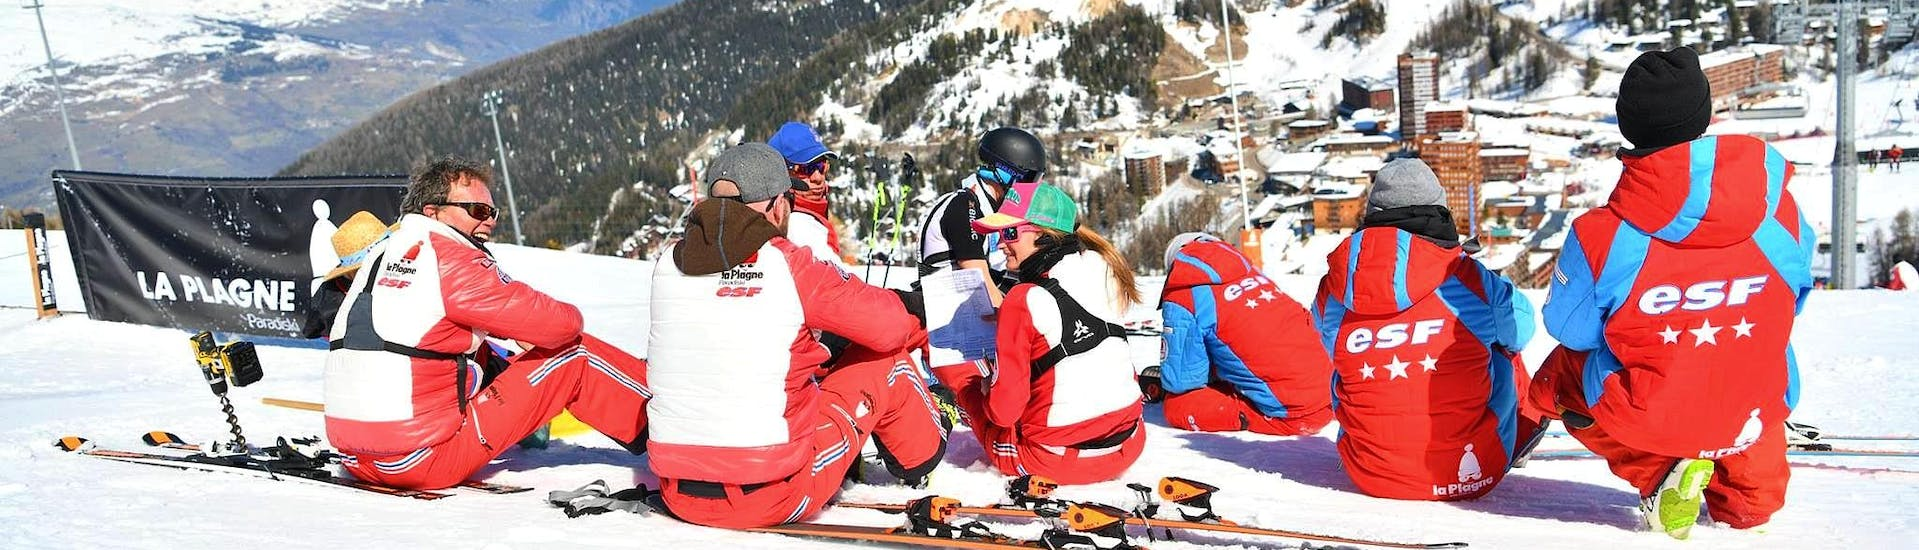 ski-lessons-for-adults-morning-holidays-esf-la-plagne-hero